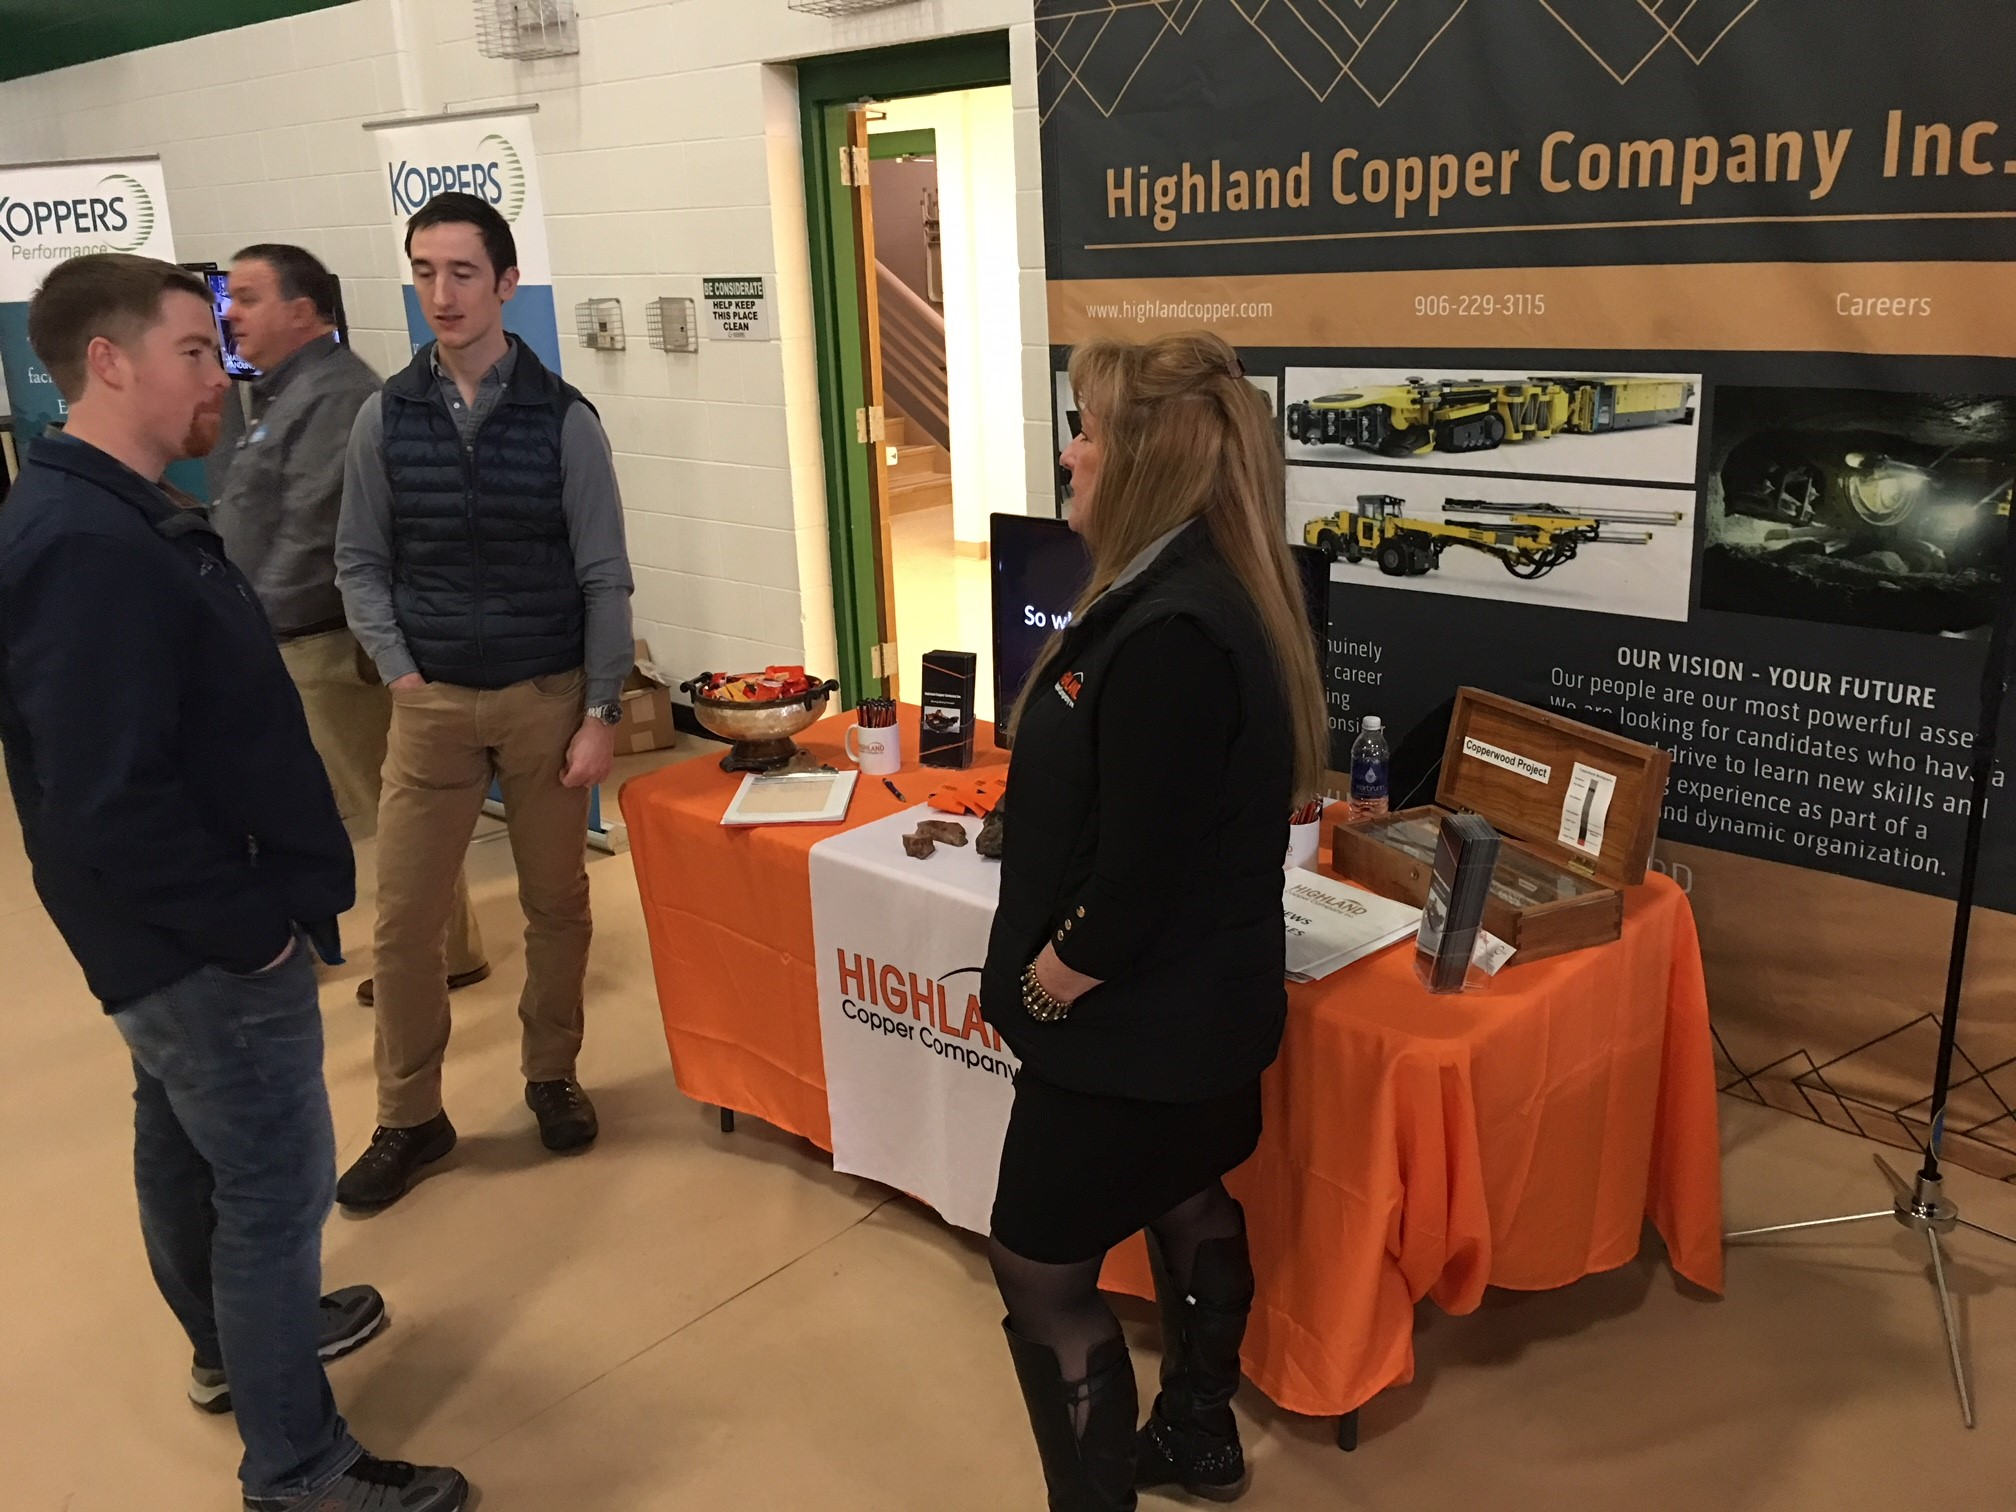 Gogebic_Career_Fair-2018-booth